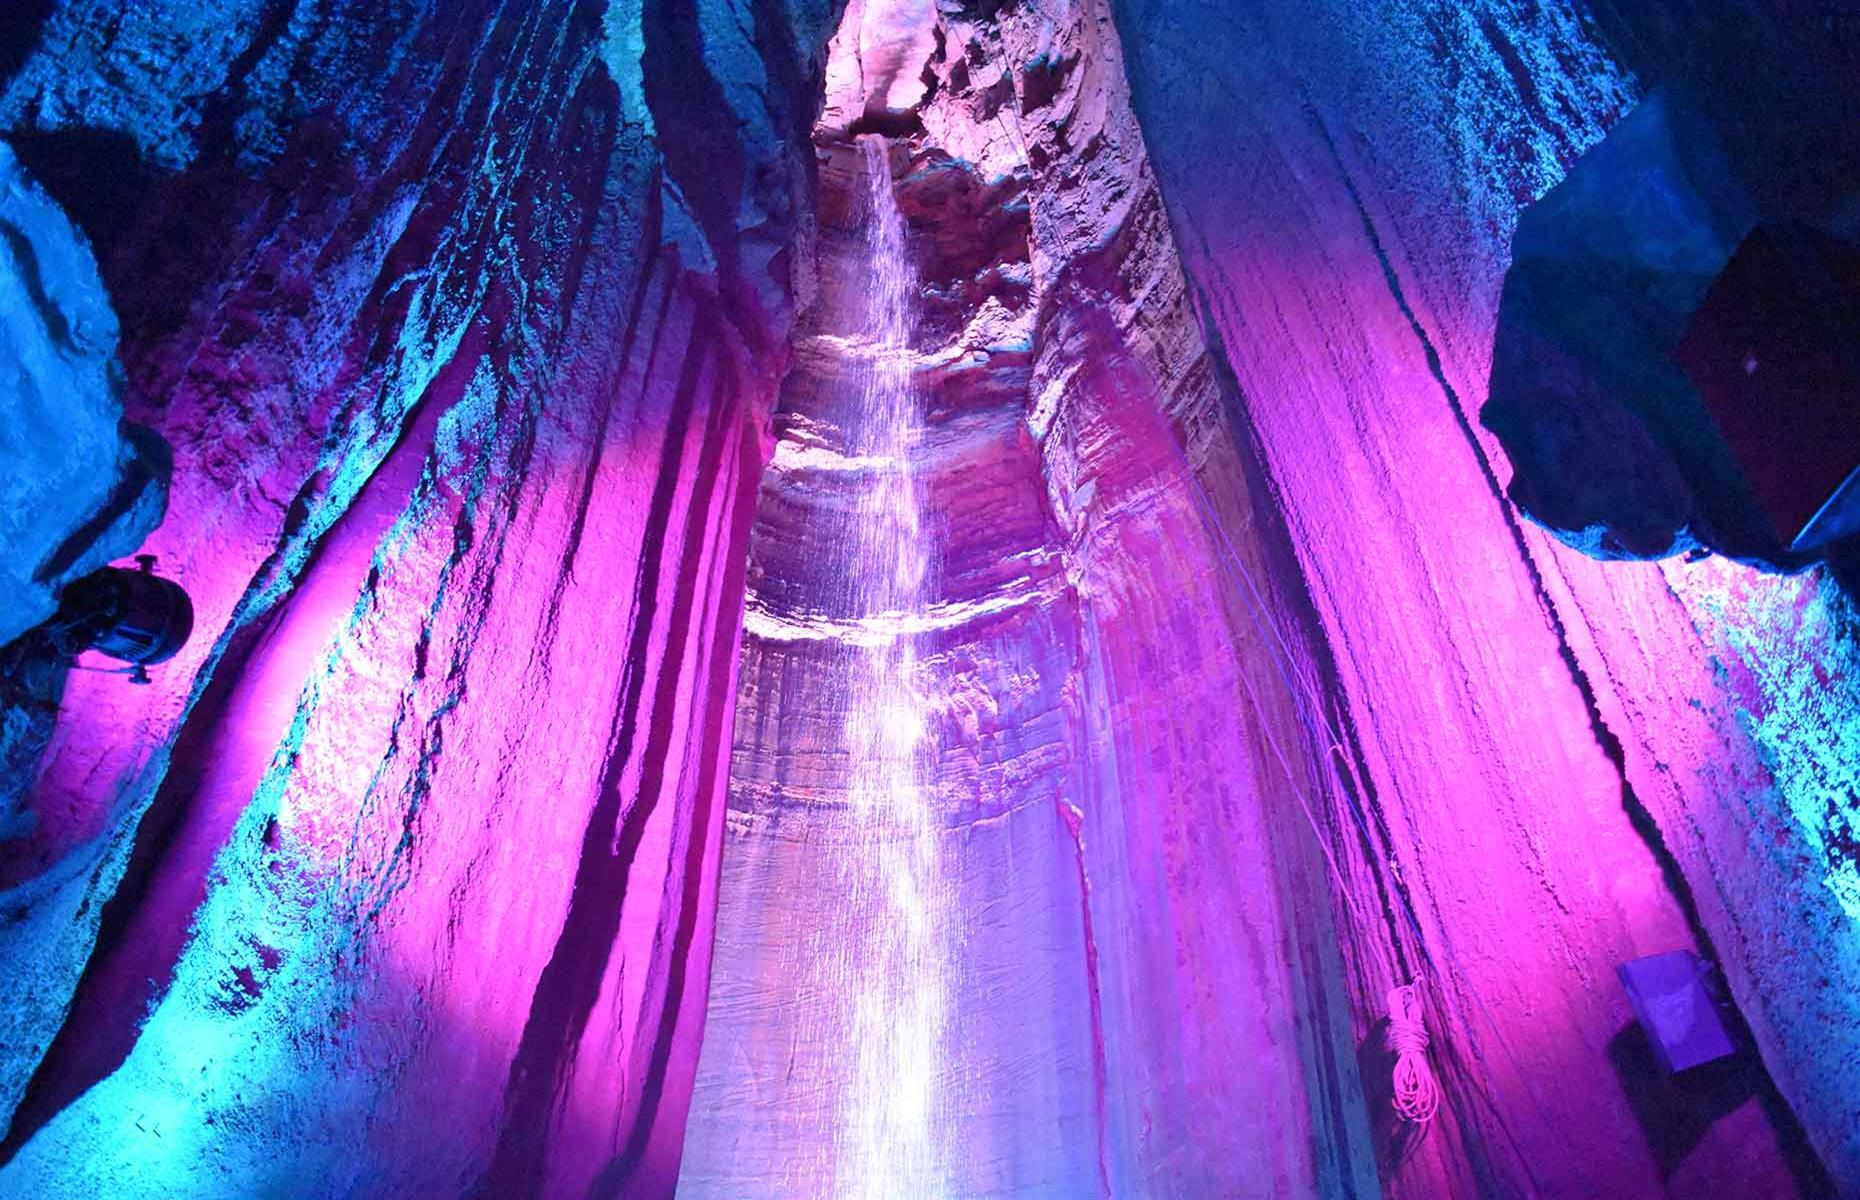 Slide 24 of 27: Ruby Falls is hidden 1,120 feet (341m) inside Tennessee's Lookout Mountain. This cascade of water tumbles 145 feet (44m) into a limestone cave, against the backdrop of music and illuminated by colorful lights. Guided tours take you on the underground walk to the falls and, if bright lights and music aren't your thing, there are limited spots available on evening tours, where the walk and falls are lit by lanterns.